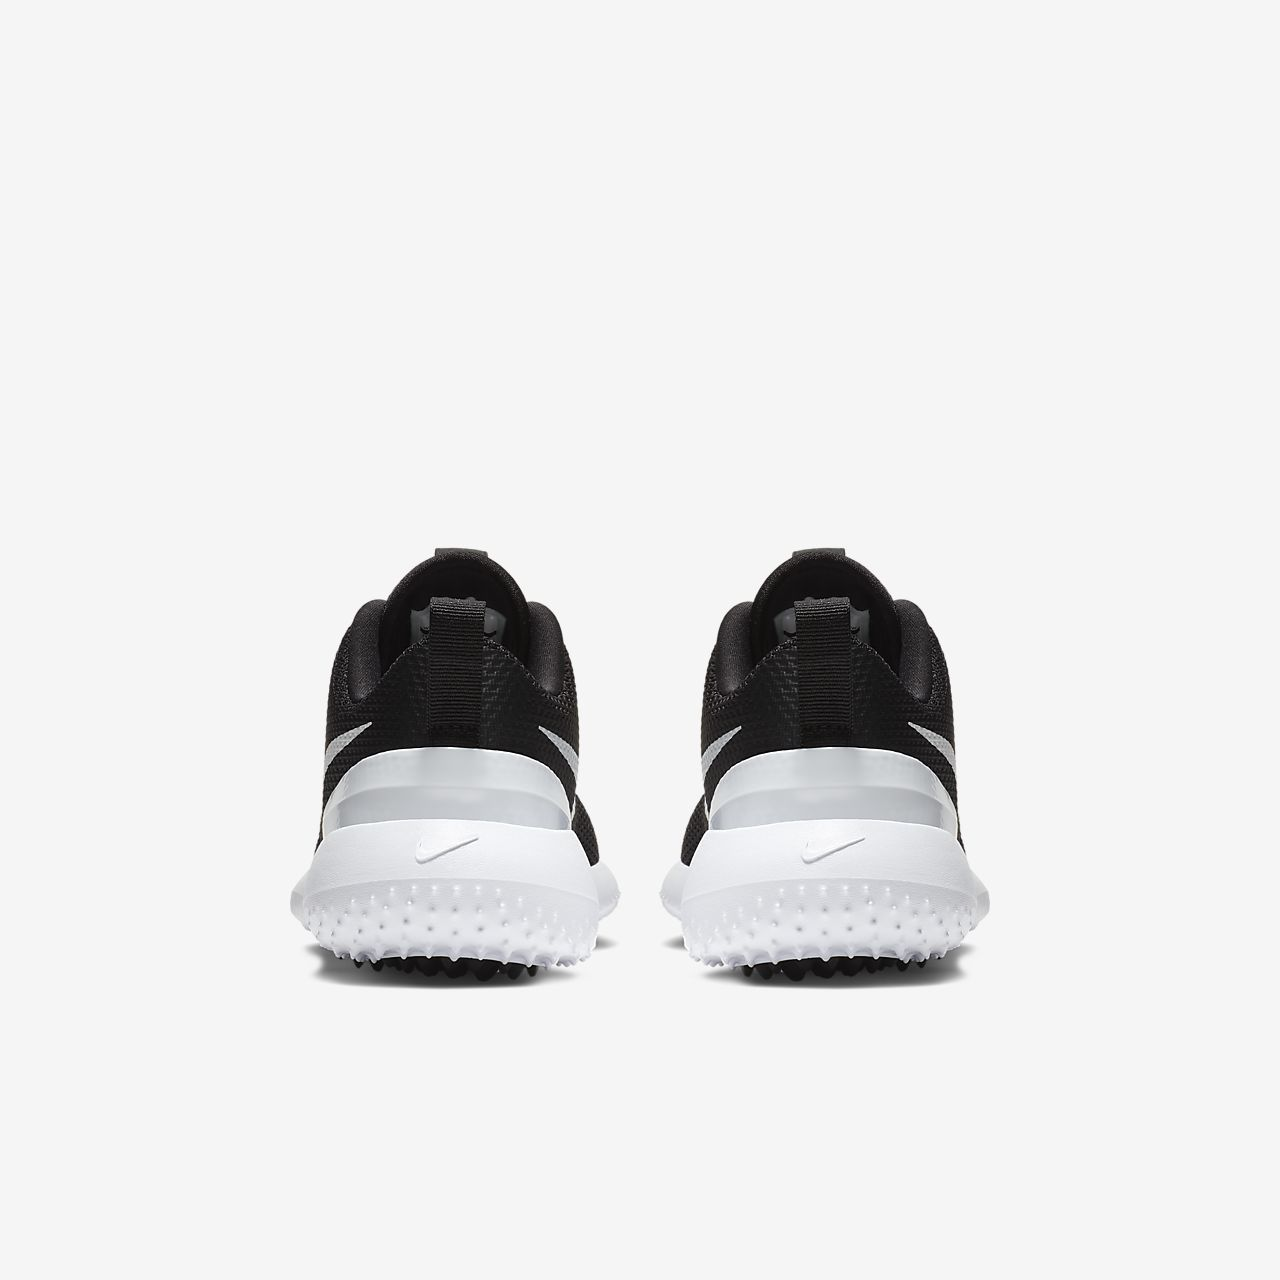 nike roshe g men's golf shoe nz